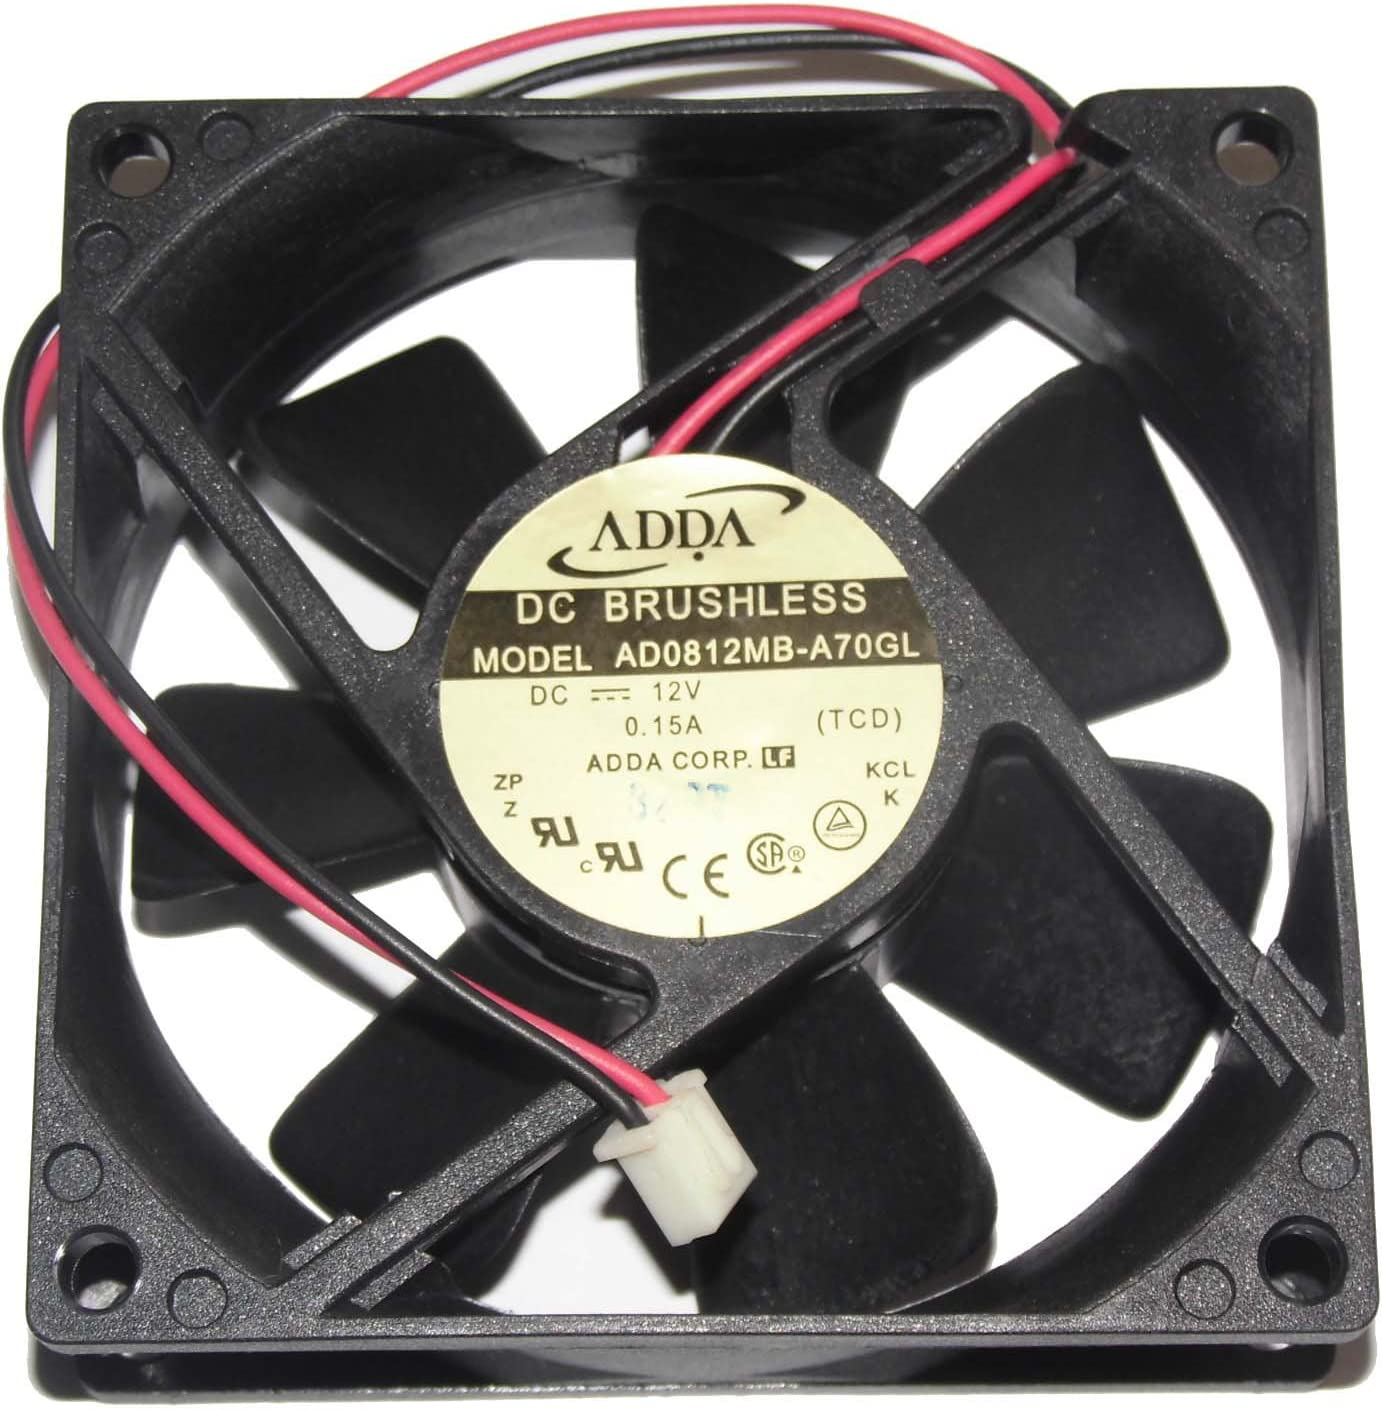 Brand new FOR ADDA AD0812MB-A70GL 8cm 8025 monitor cooling fan 12V 0.15A 2wires